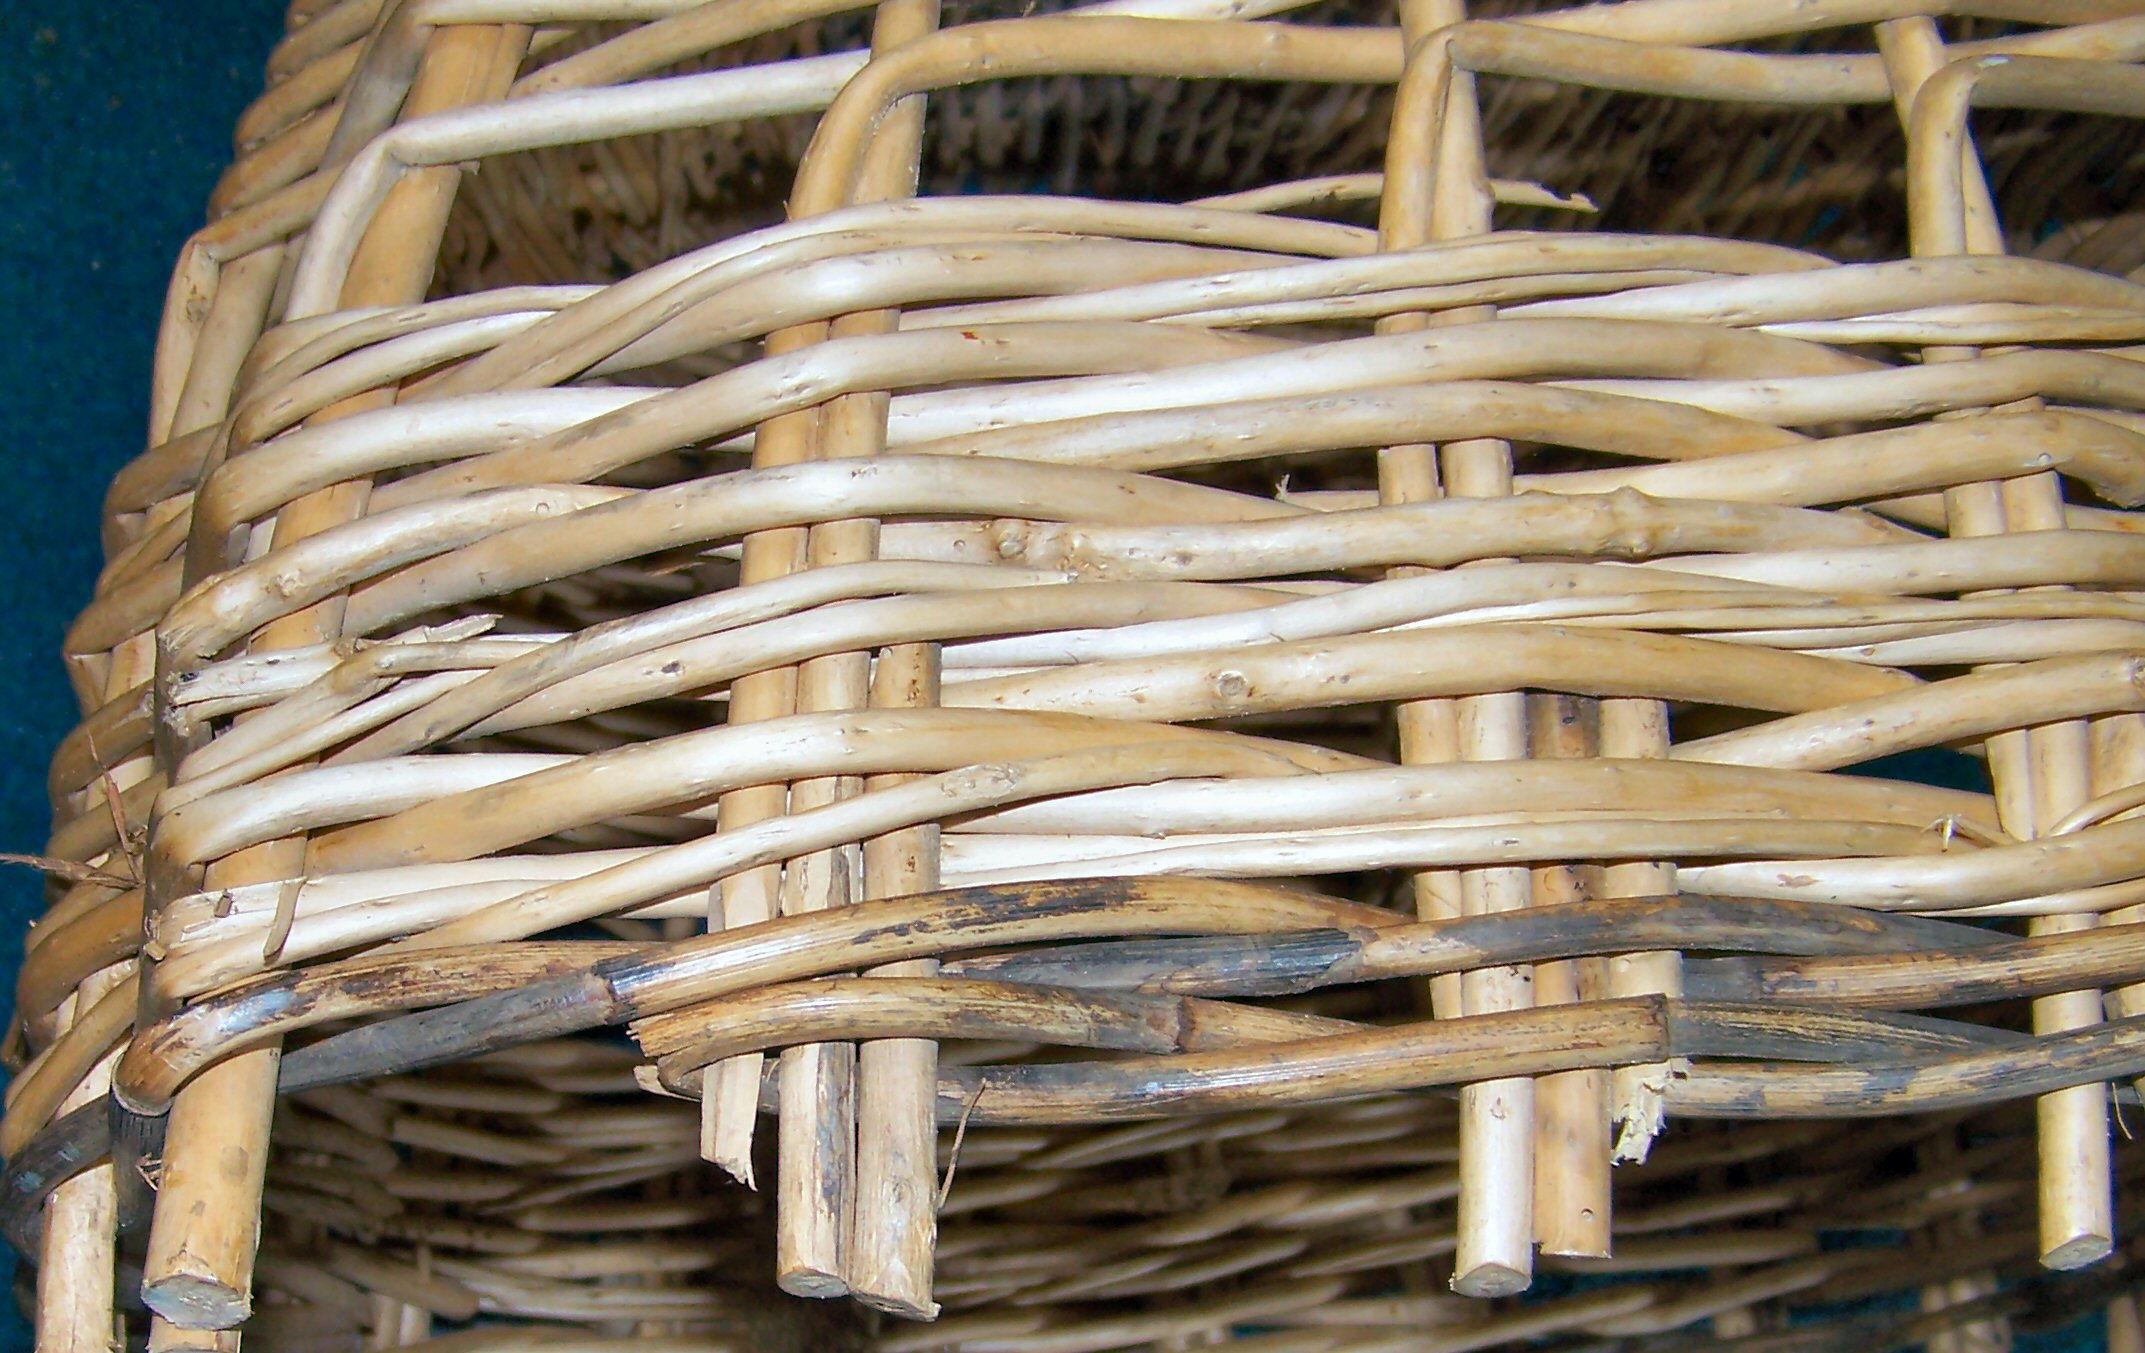 Beginning the weave, creel, cane and willow, Ness, Lewis